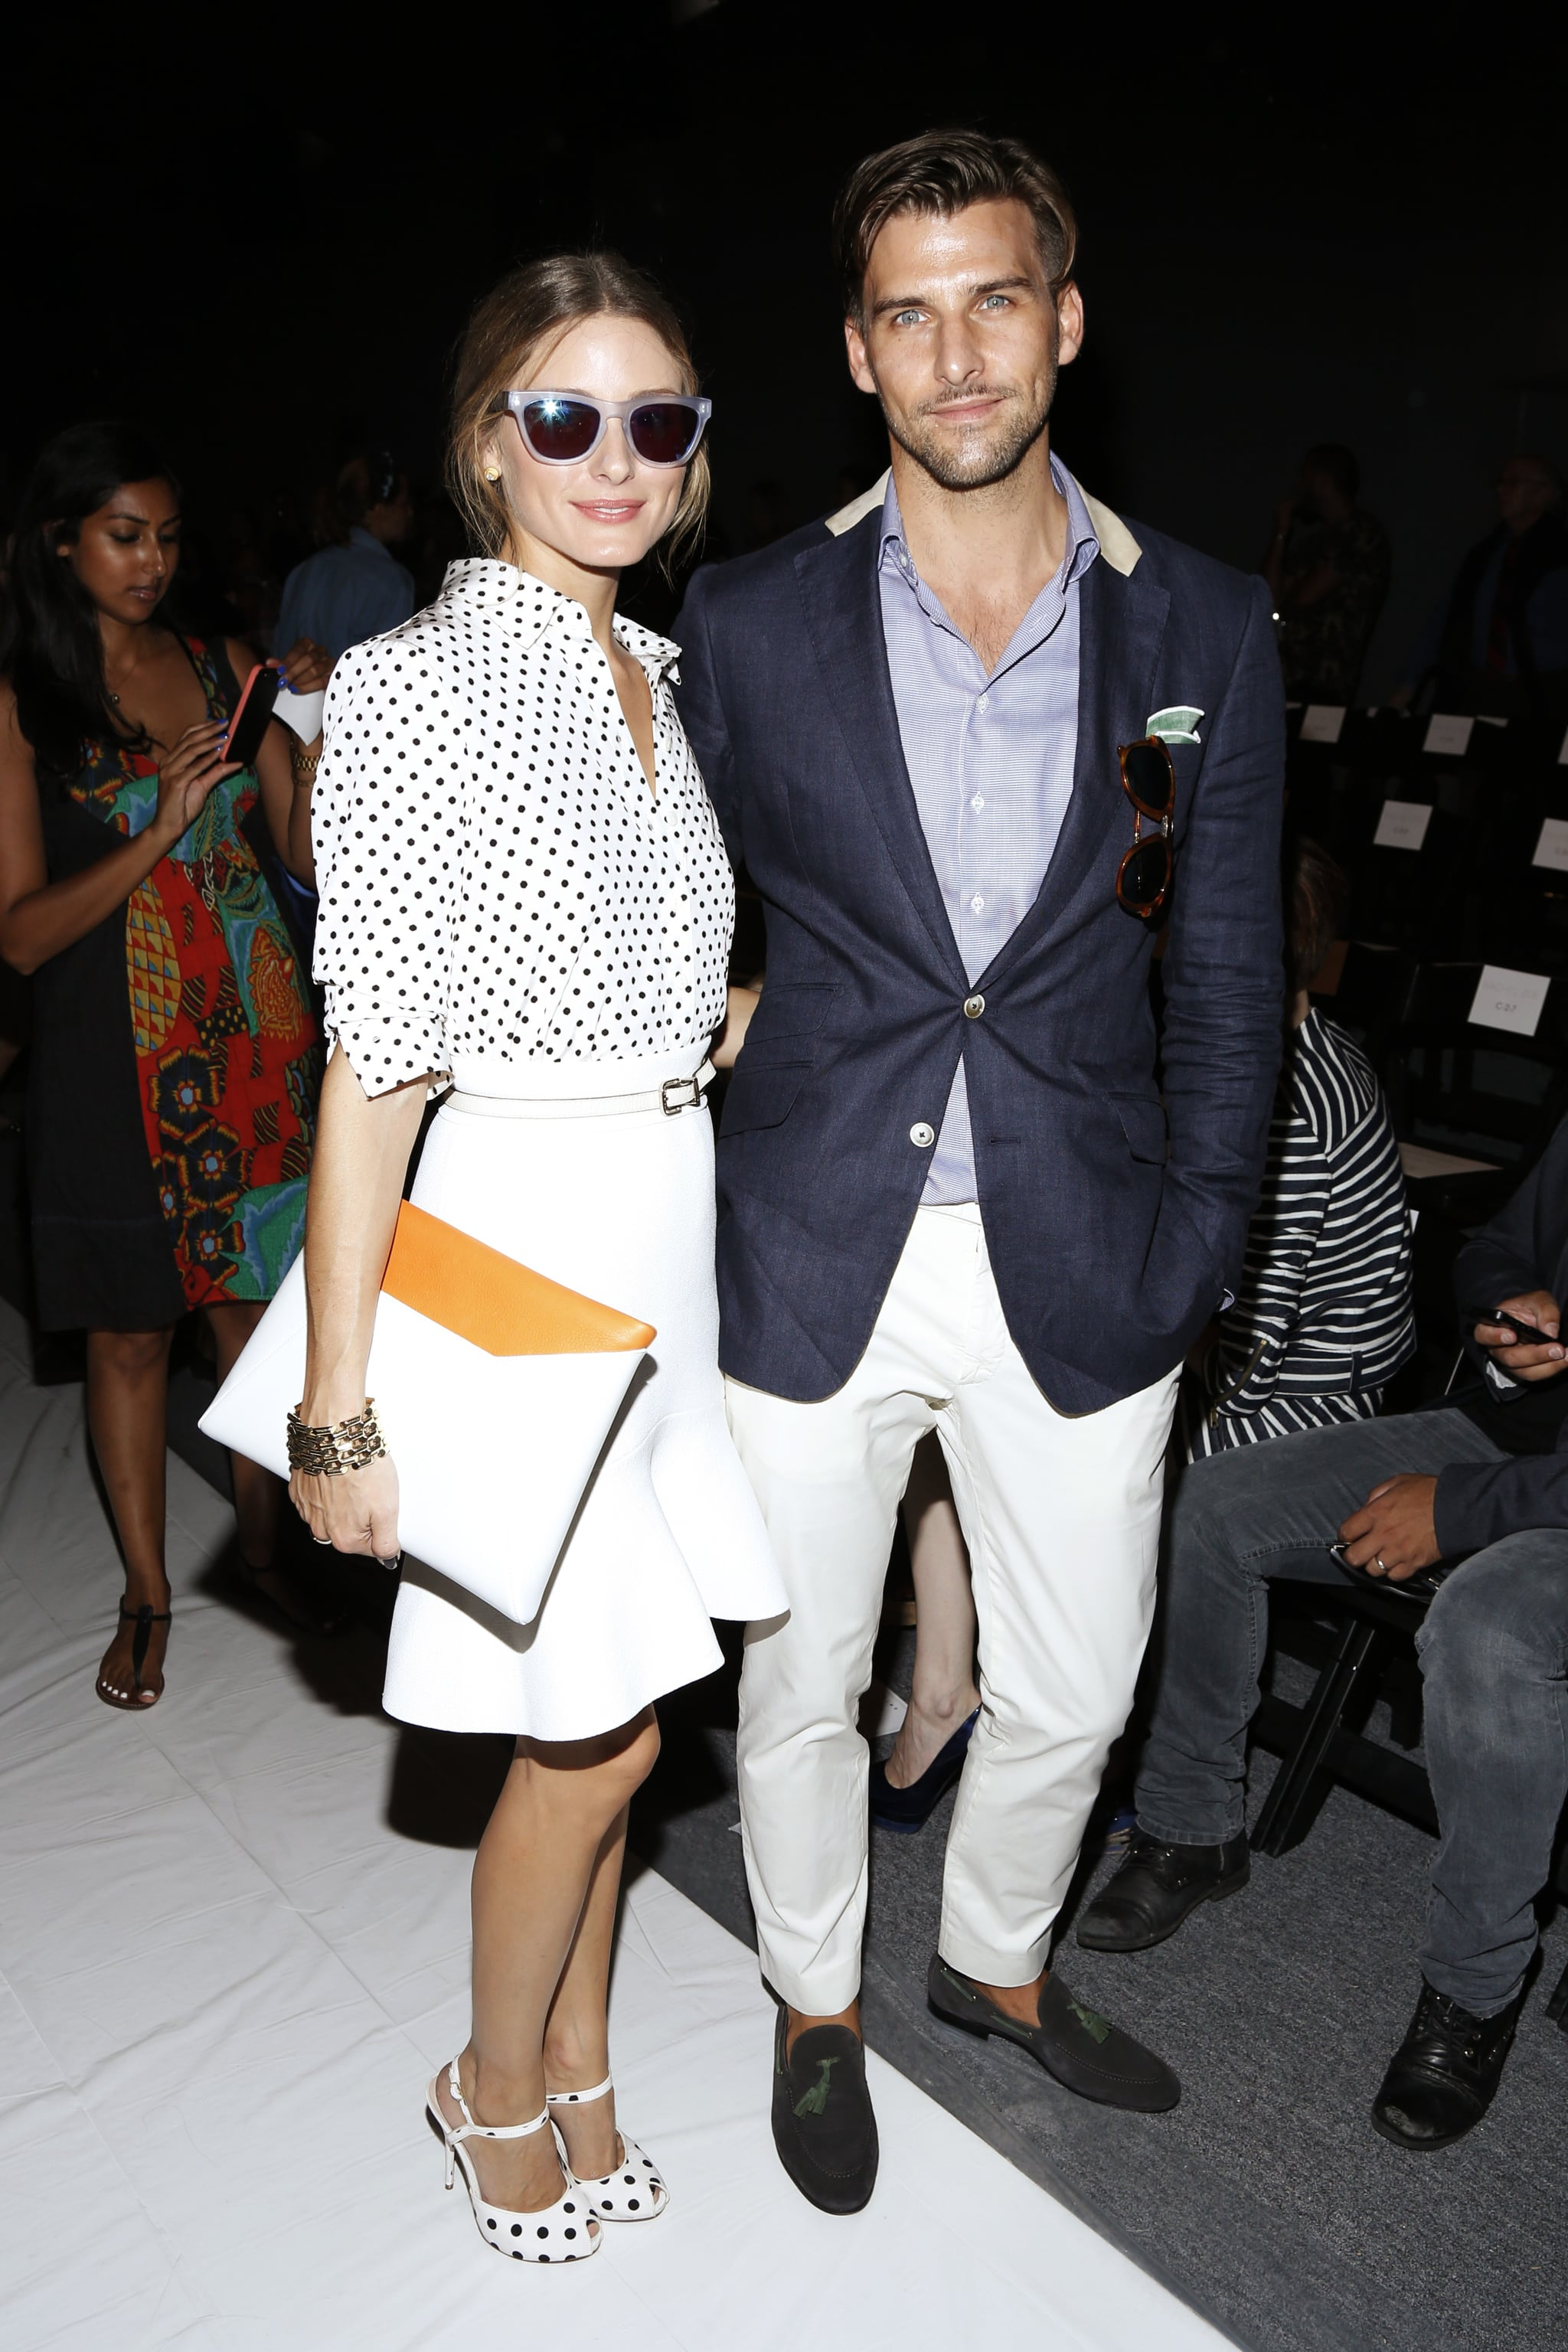 Olivia Palermo was joined by her boyfriend, Johannes Huebel, at the Rachel Zoe runway show on Wednesday.